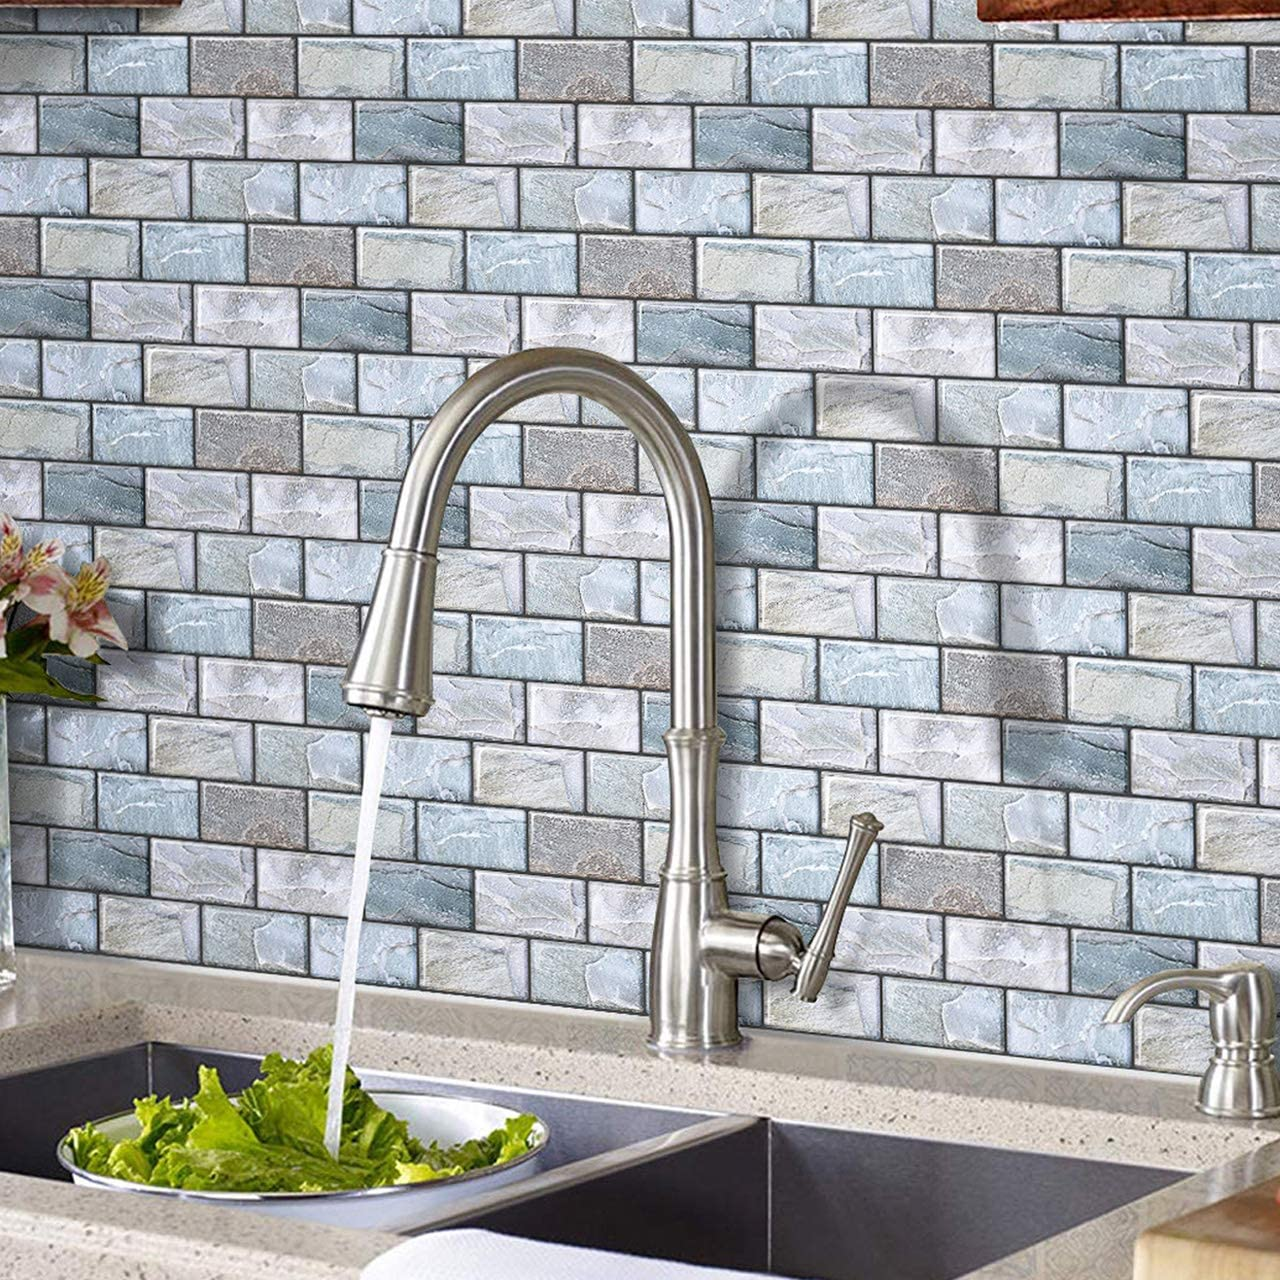 Hyfanstr 3d Brick Effect Peel And Stick Tile 3d Tile Sticker Self Adhesive Wall Tiles For Kitchen Bath 27x25 4cm Pack Of 4 Amazon Co Uk Kitchen Home